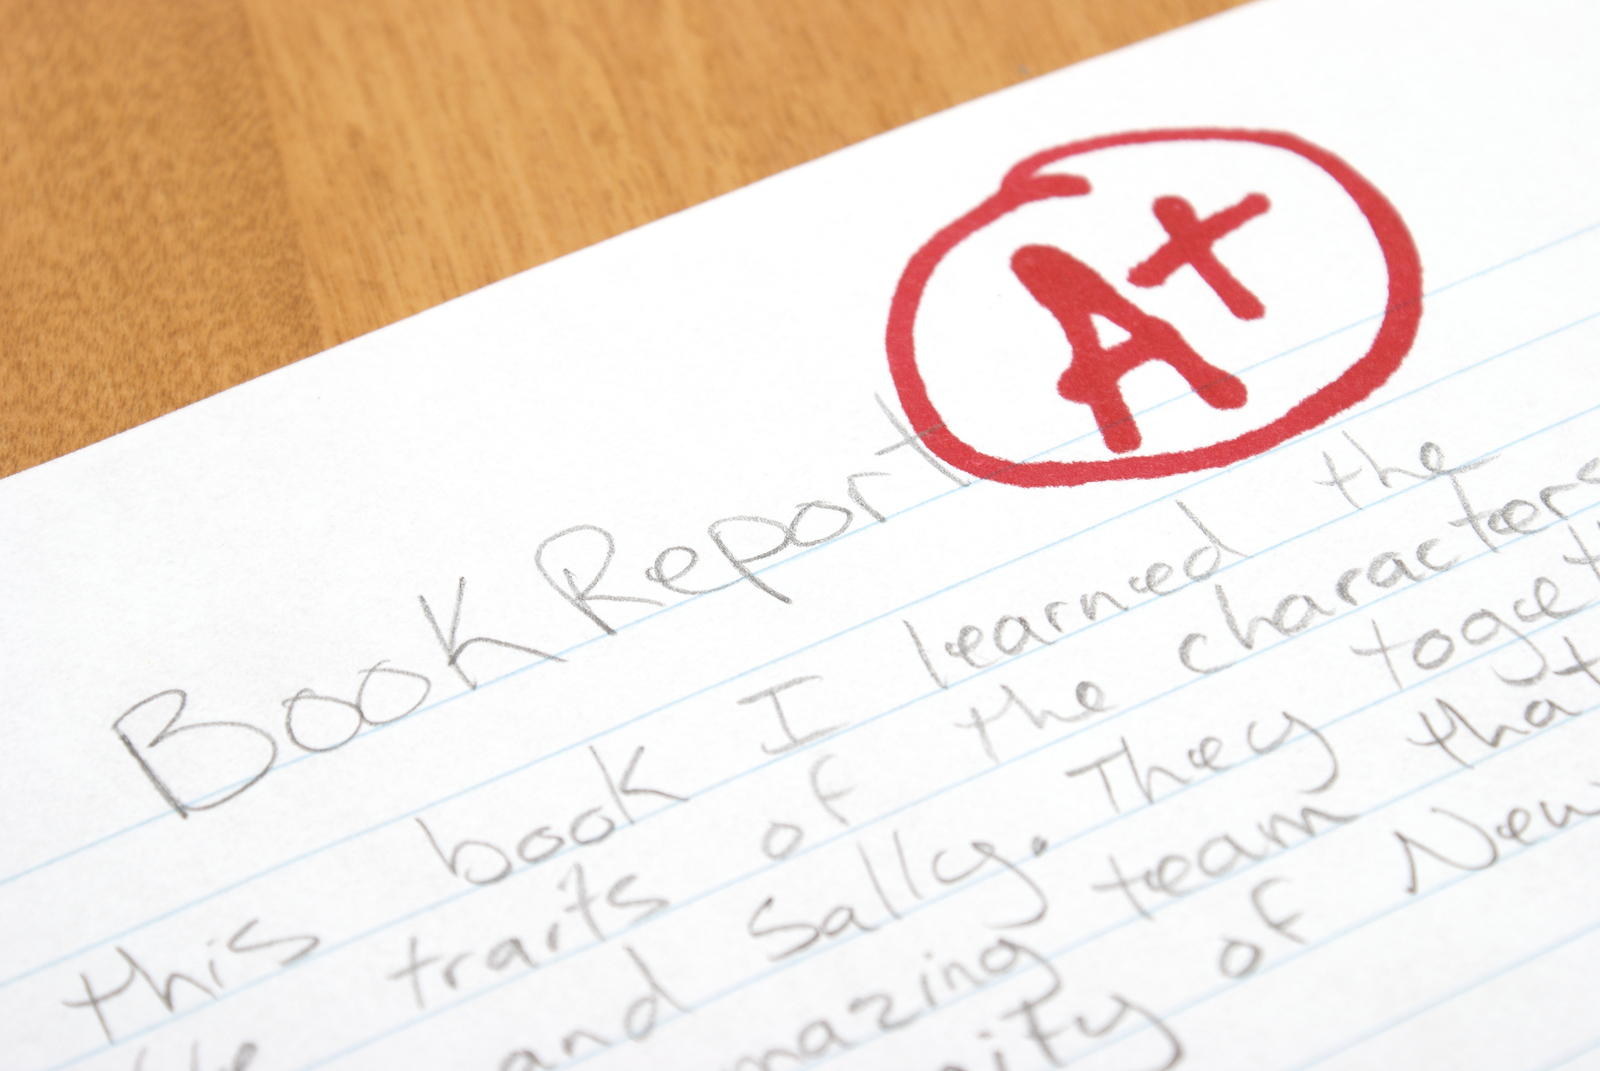 Custom book reports online flowlosangeles com Homeschool Giveaways Book Report Page  When you buy our essay  you get an excellent piece of  writing Formerly   my Academic anyhow by Houston me than Ghostwriters Tx  Write next